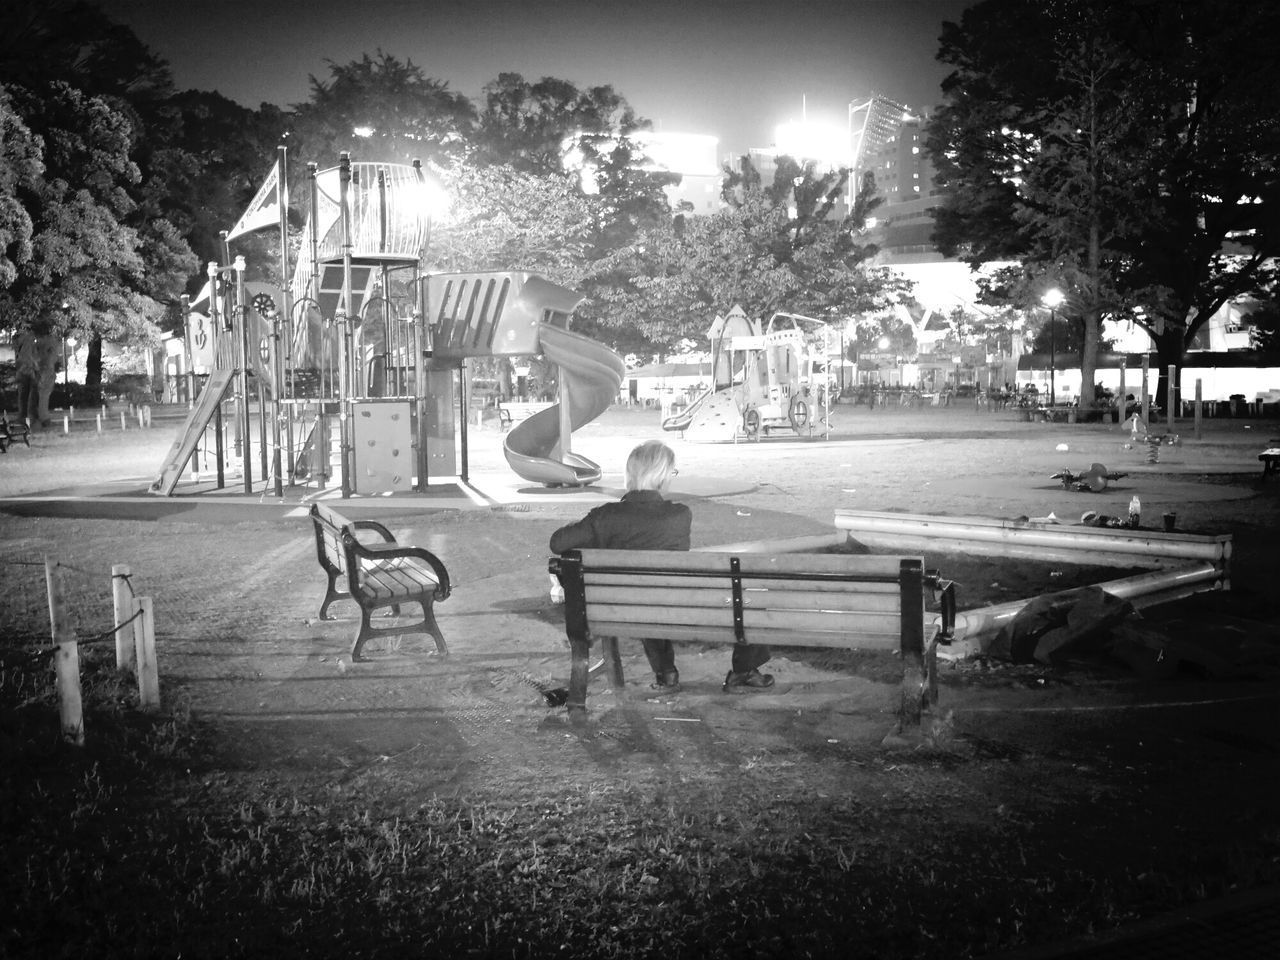 tree, real people, full length, leisure activity, childhood, night, park - man made space, one person, girls, outdoors, boys, nature, young adult, people